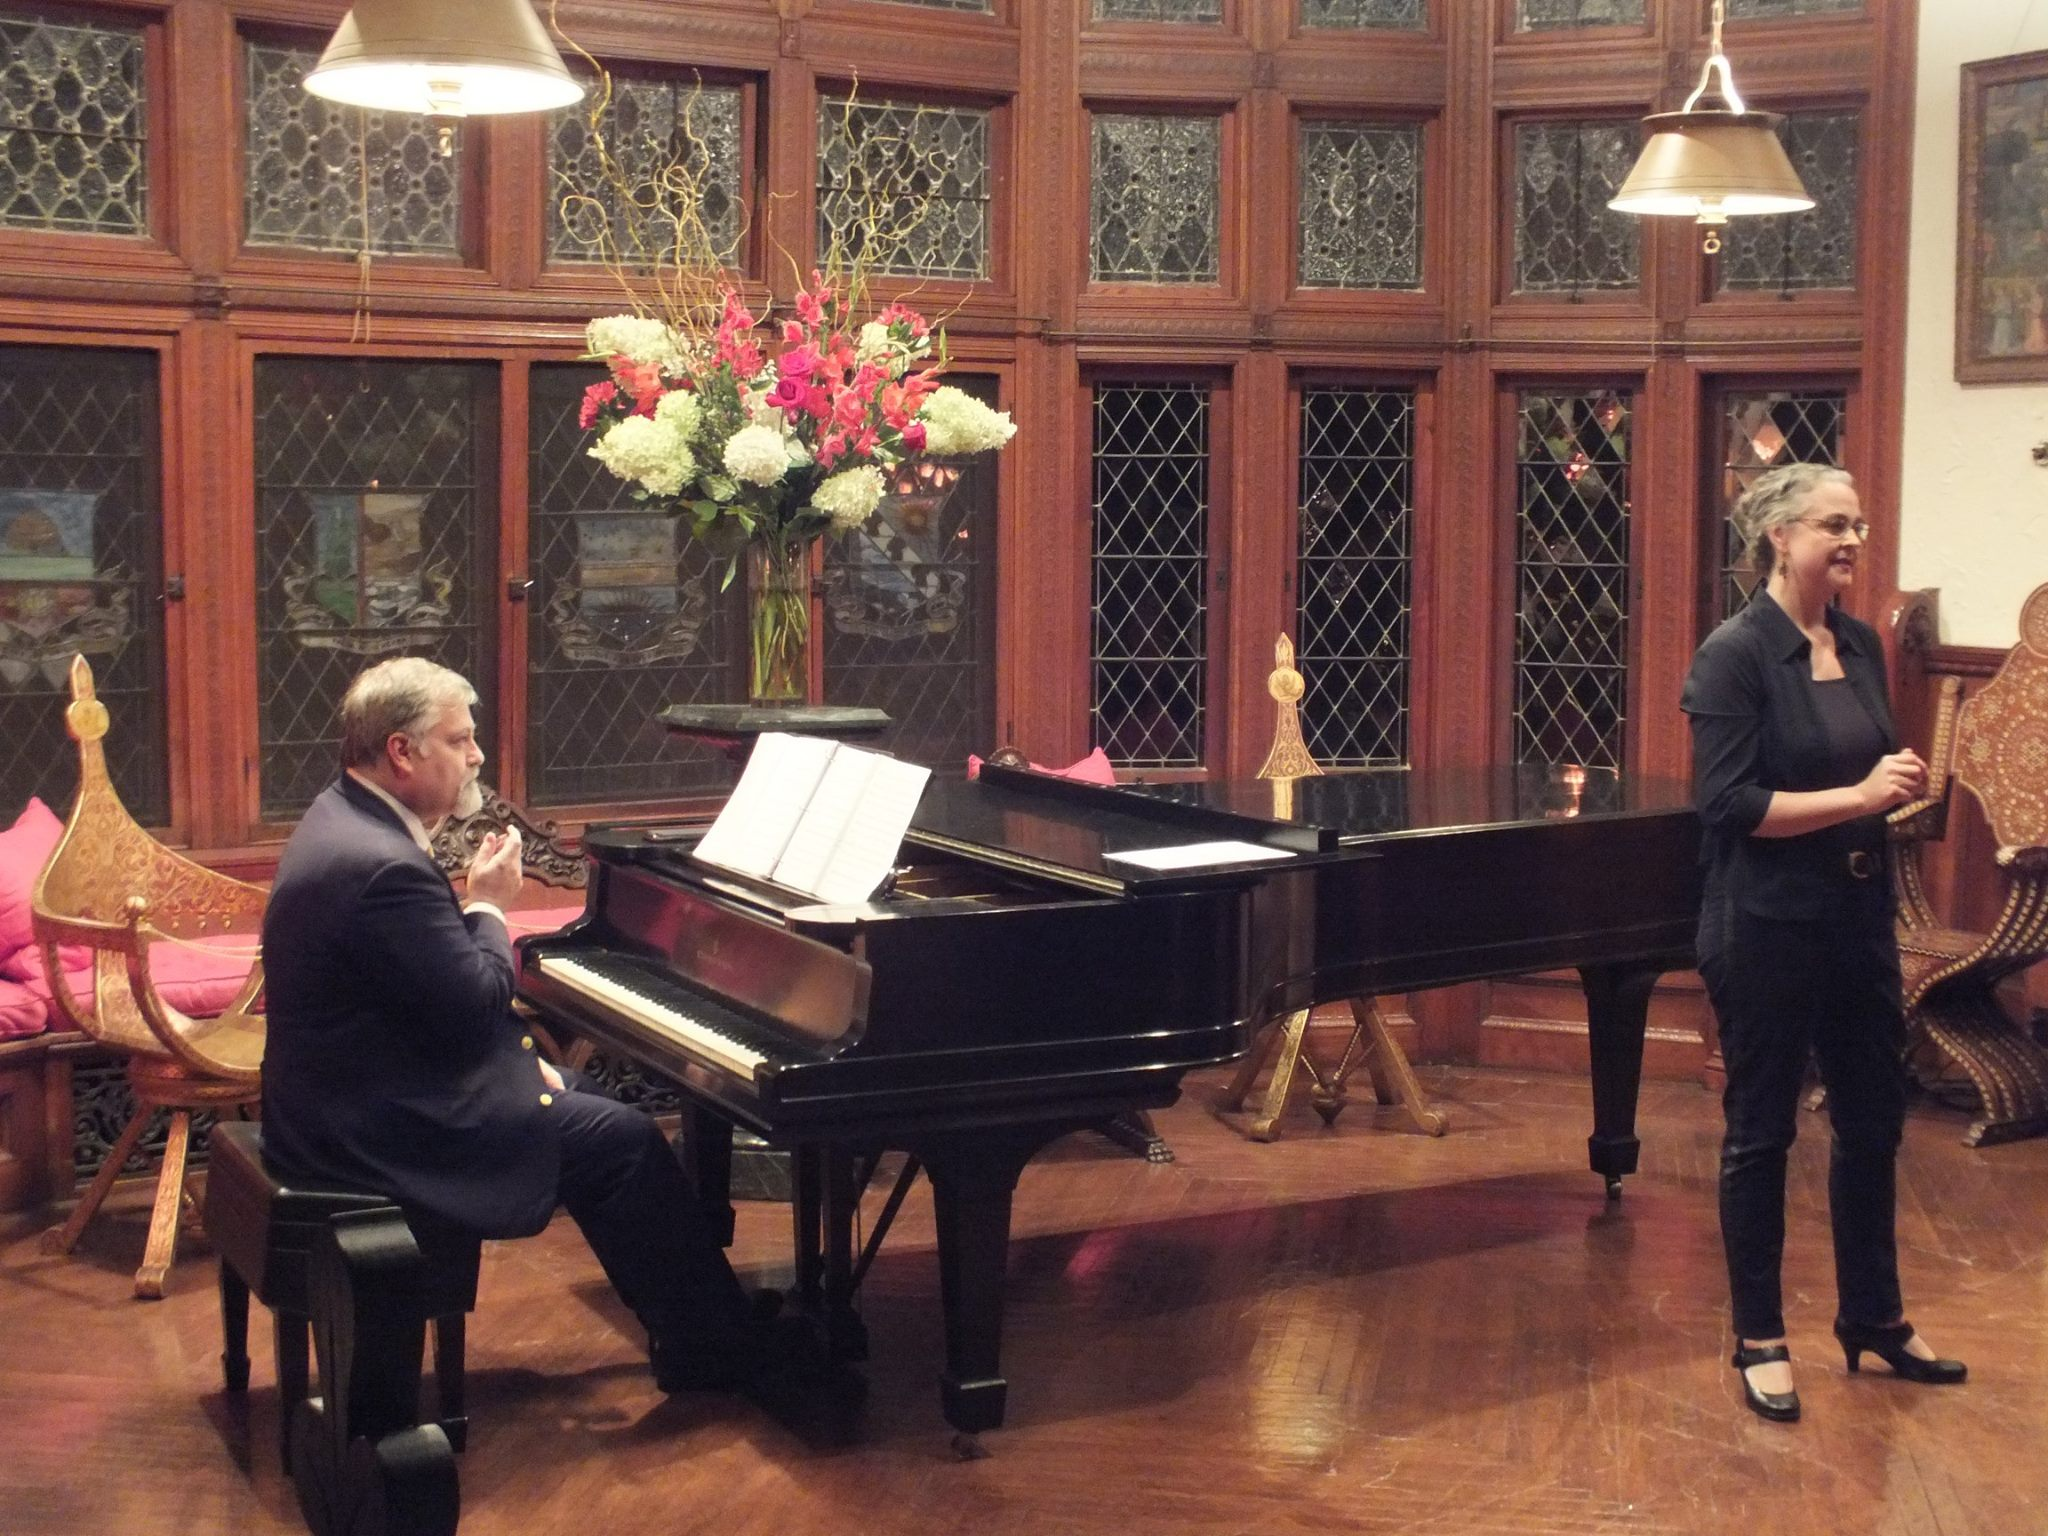 Performing with Gilda Lyons in the Music Room during the Annual Meeting. Aaron Copland premiered his Piano Variations on this exquisite instrument. (Photo credit: Angellos Ioannis Malefakis)